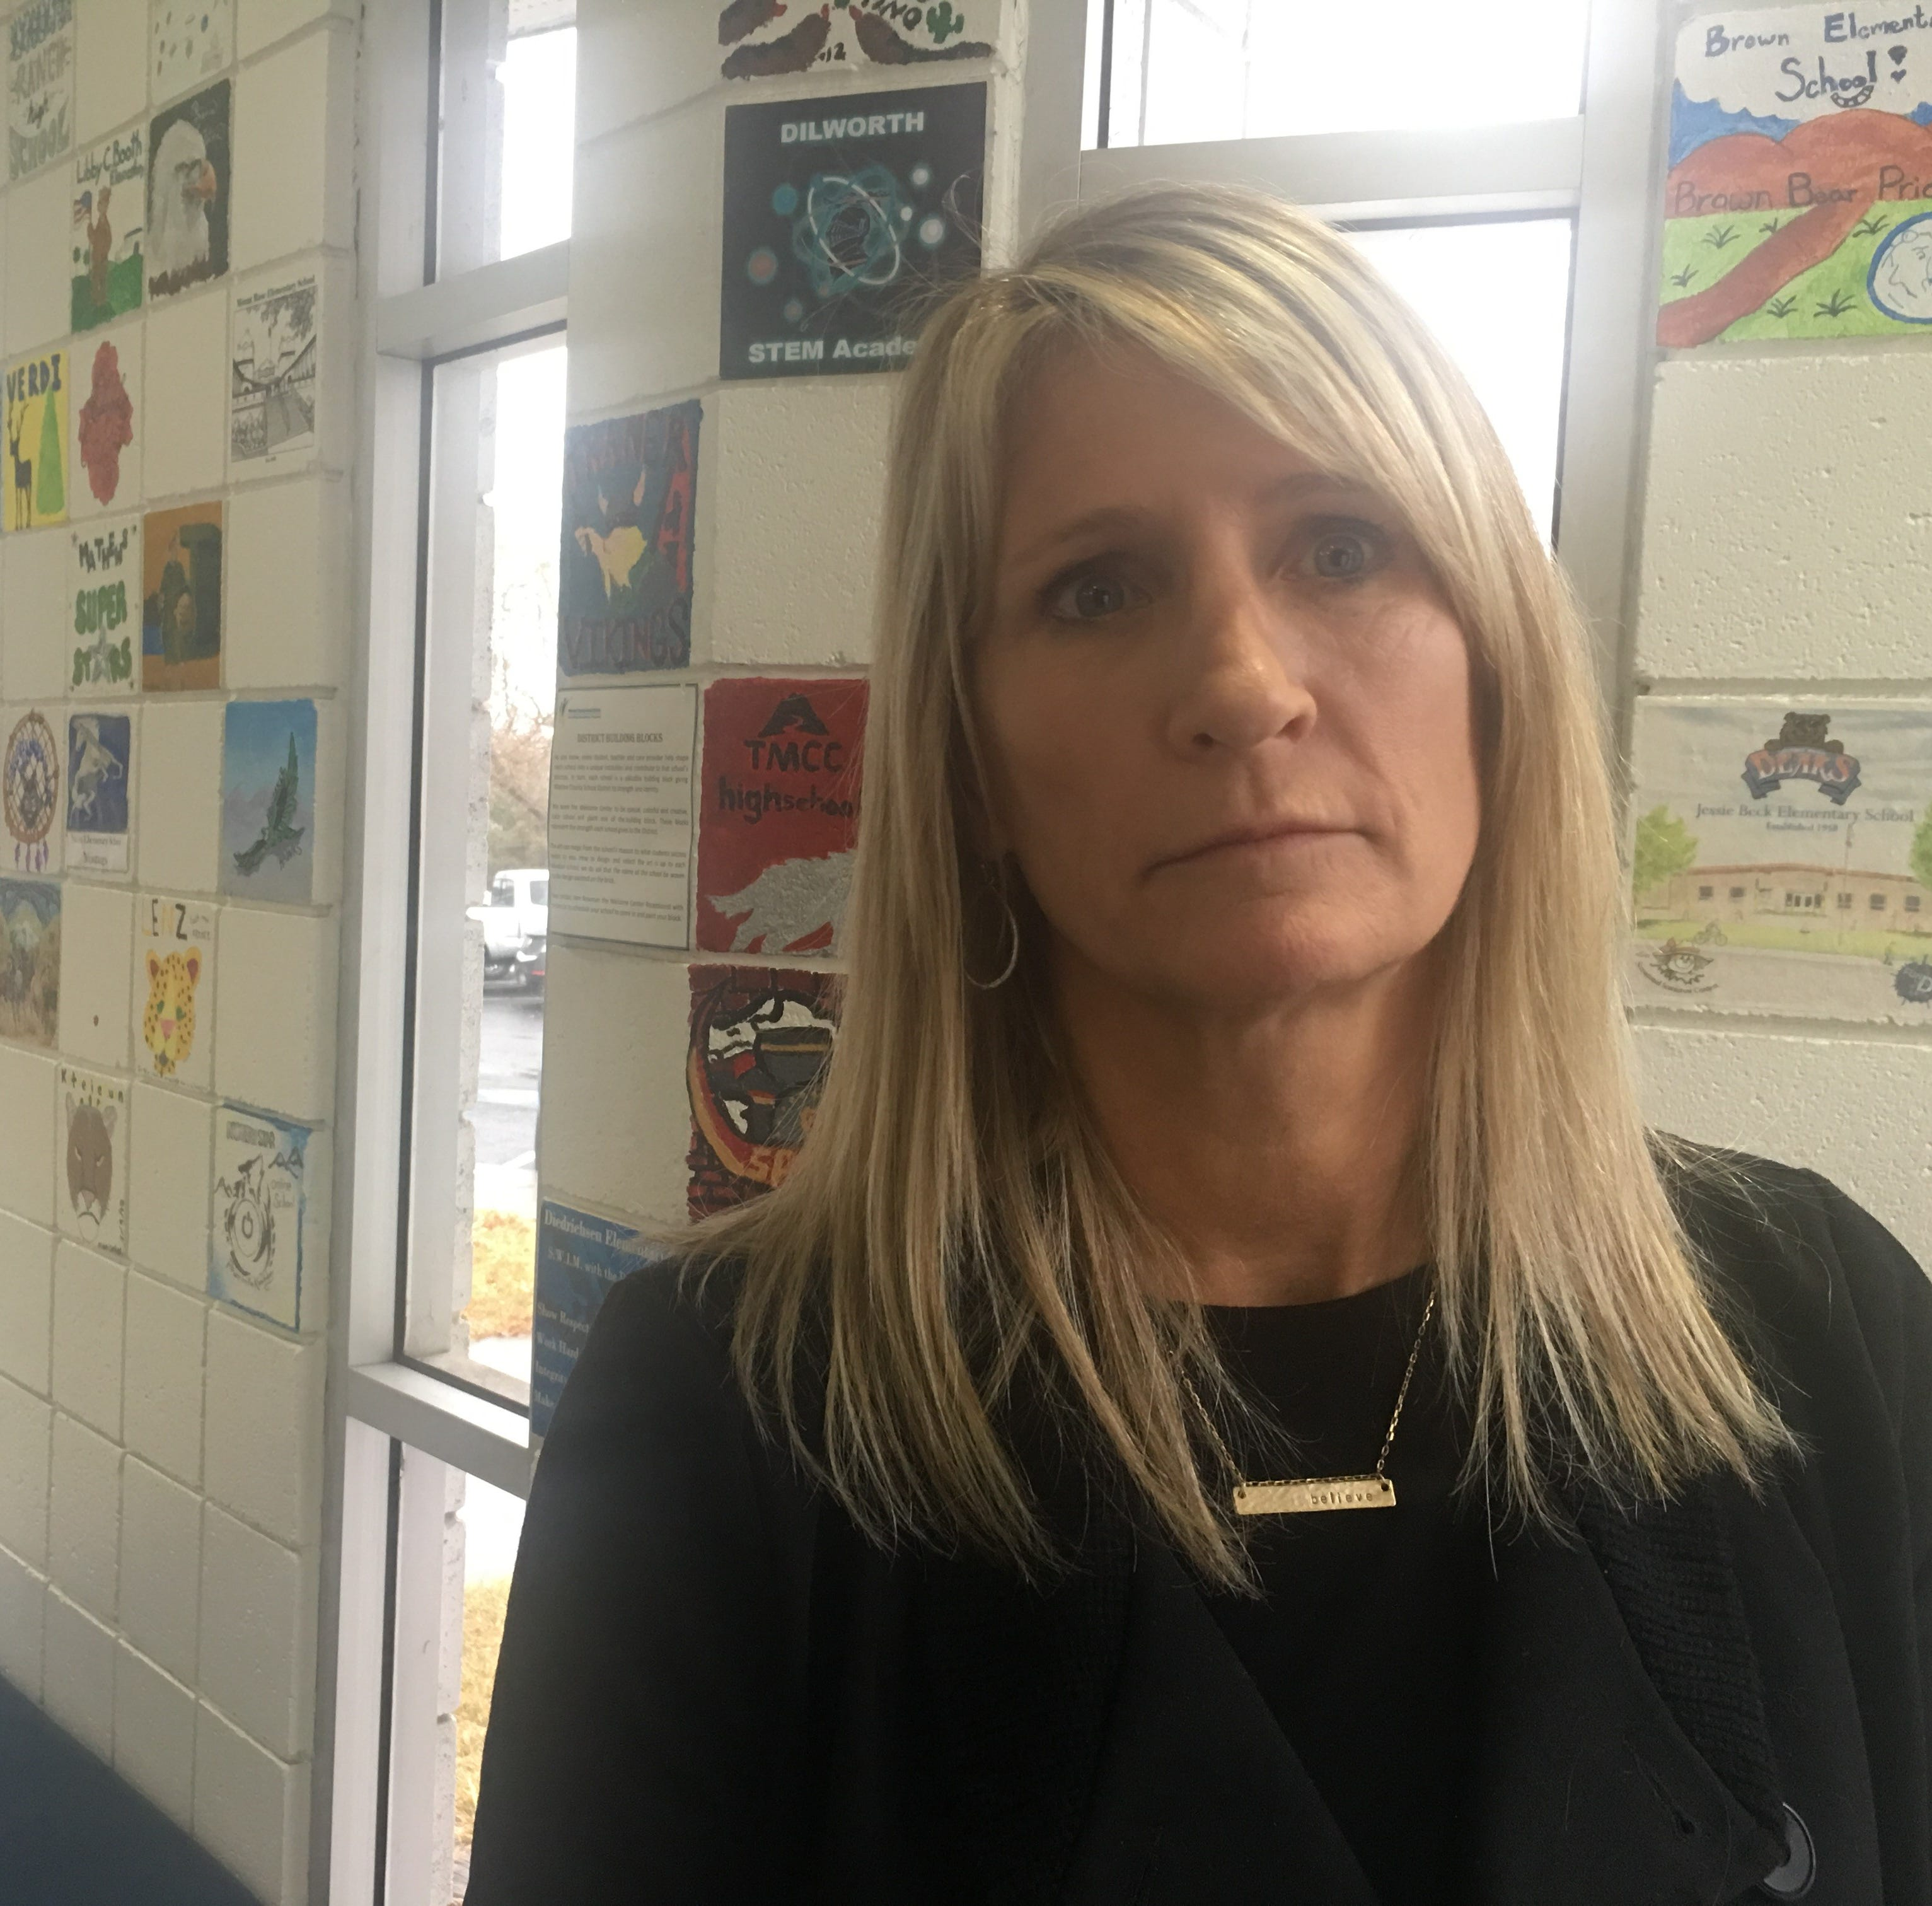 Trina Olsen, a Washoe County School District administrator, was fired and then rehired. She spoke at the school board meeting on Jan. 15, 2019.